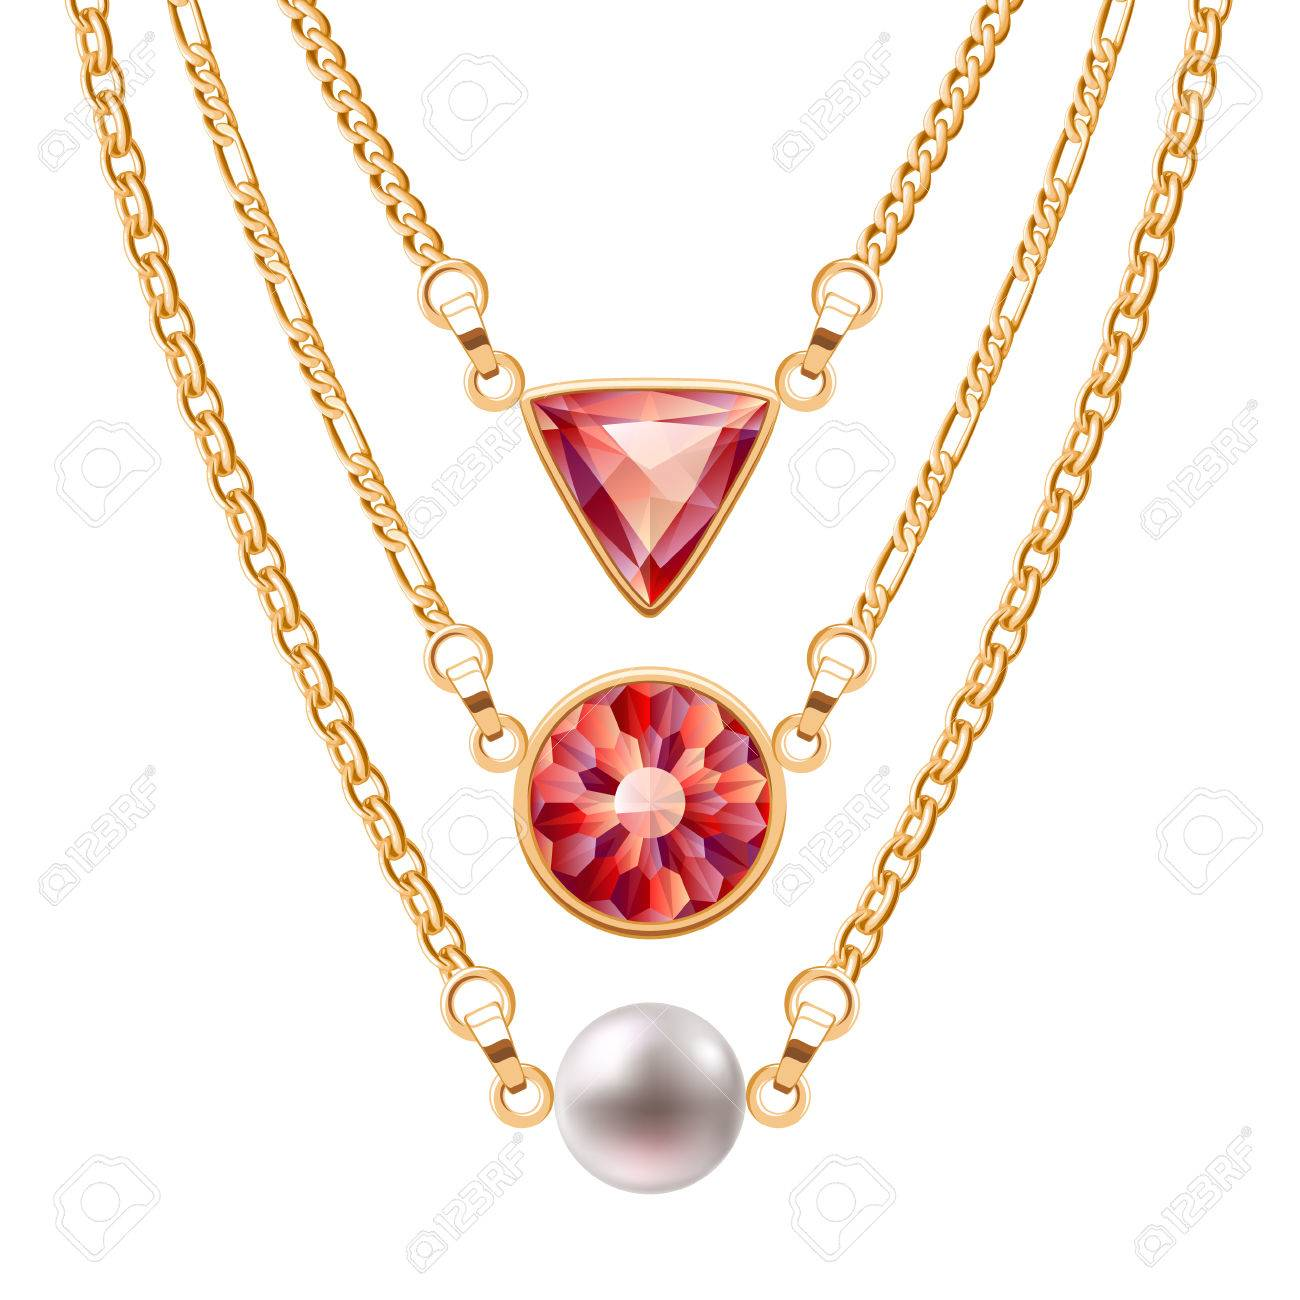 Golden chain necklaces set with round and triangle ruby pendants and pearl. Jewelry vector design. - 51440212